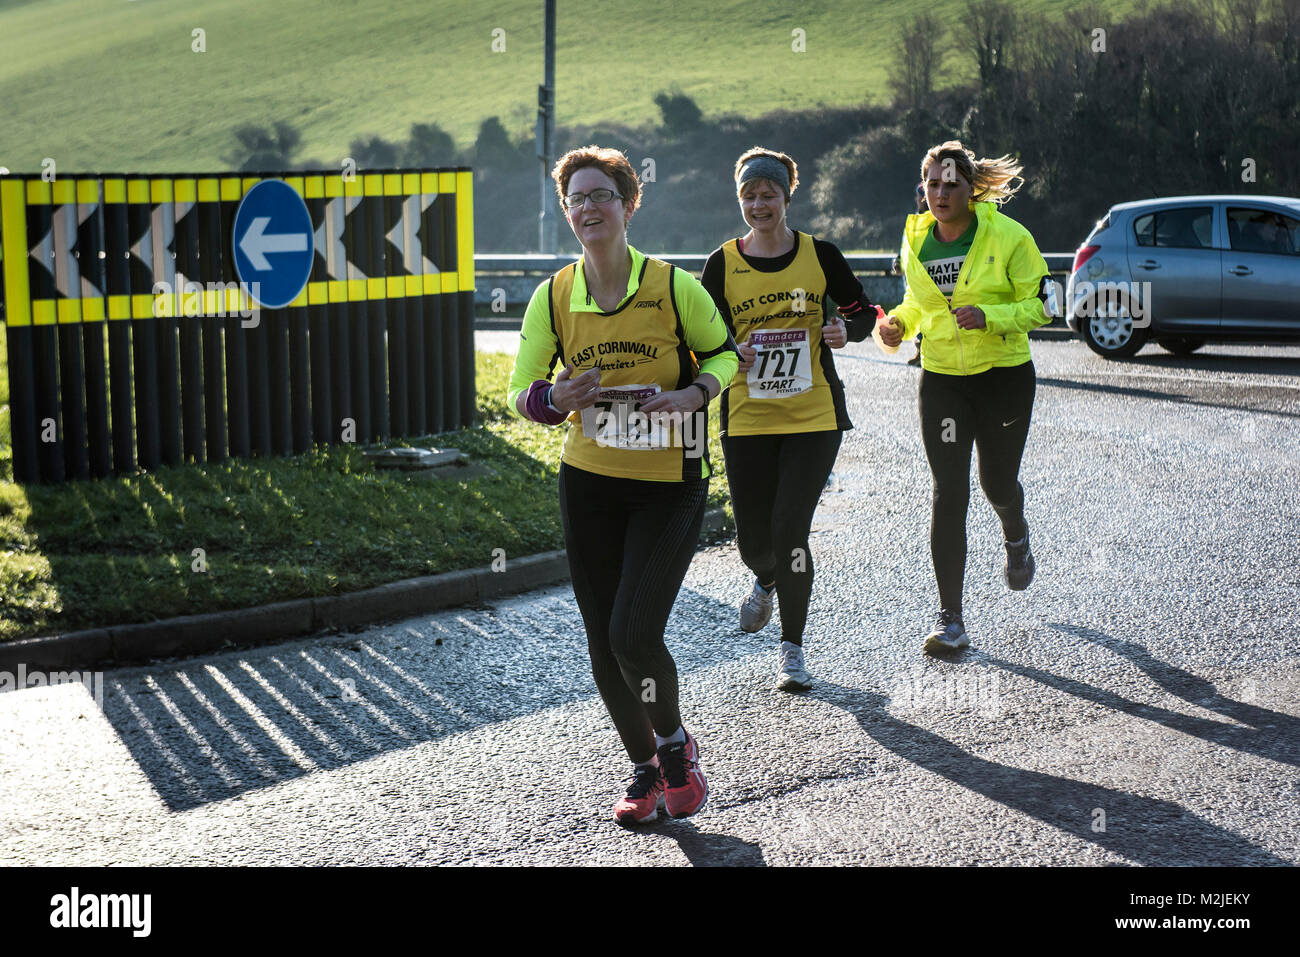 Runners competing in a road race in Newquay Cornwall. - Stock Image